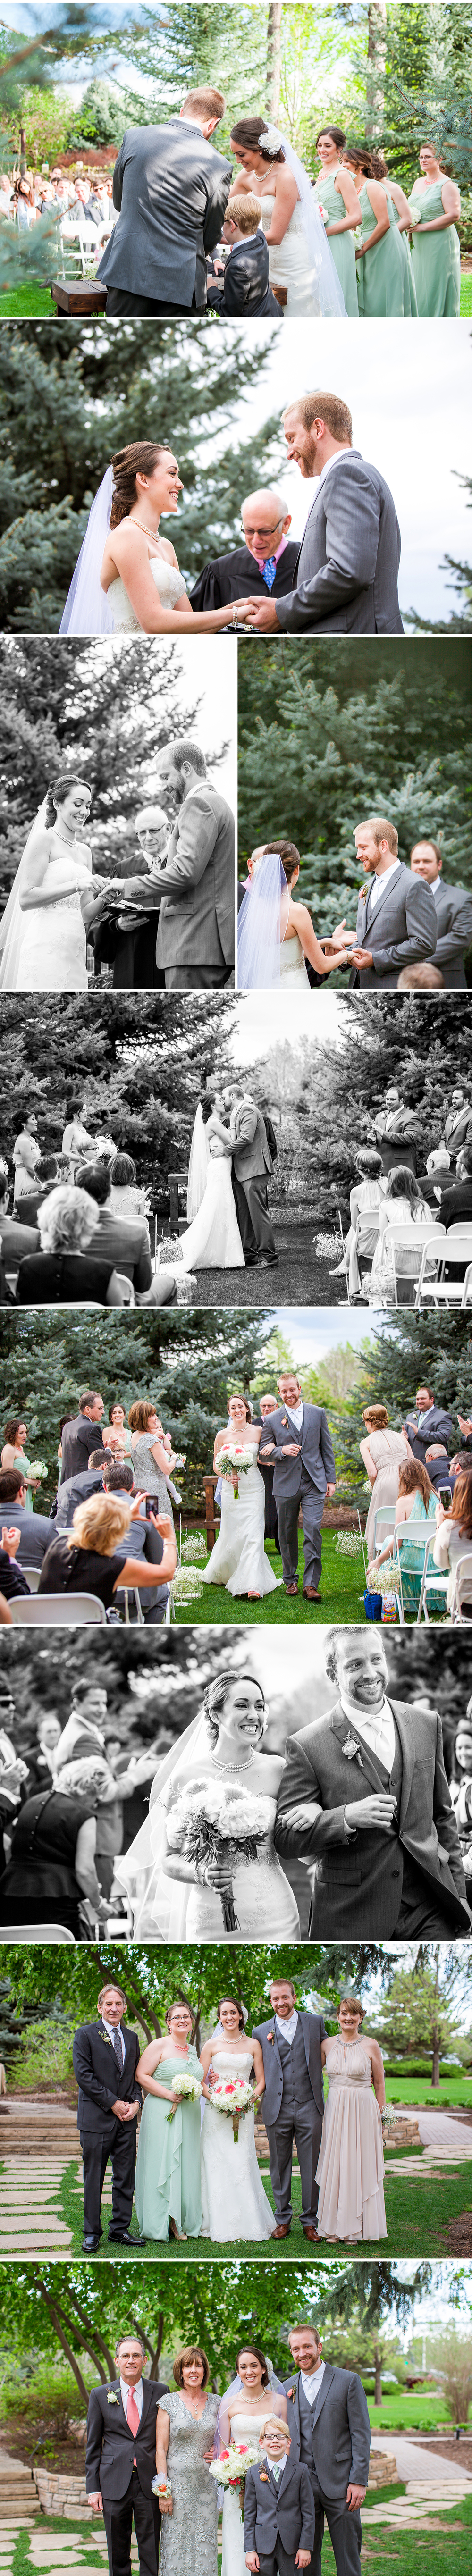 5_Hudson Gardens Wedding Photographer Denver.jpg